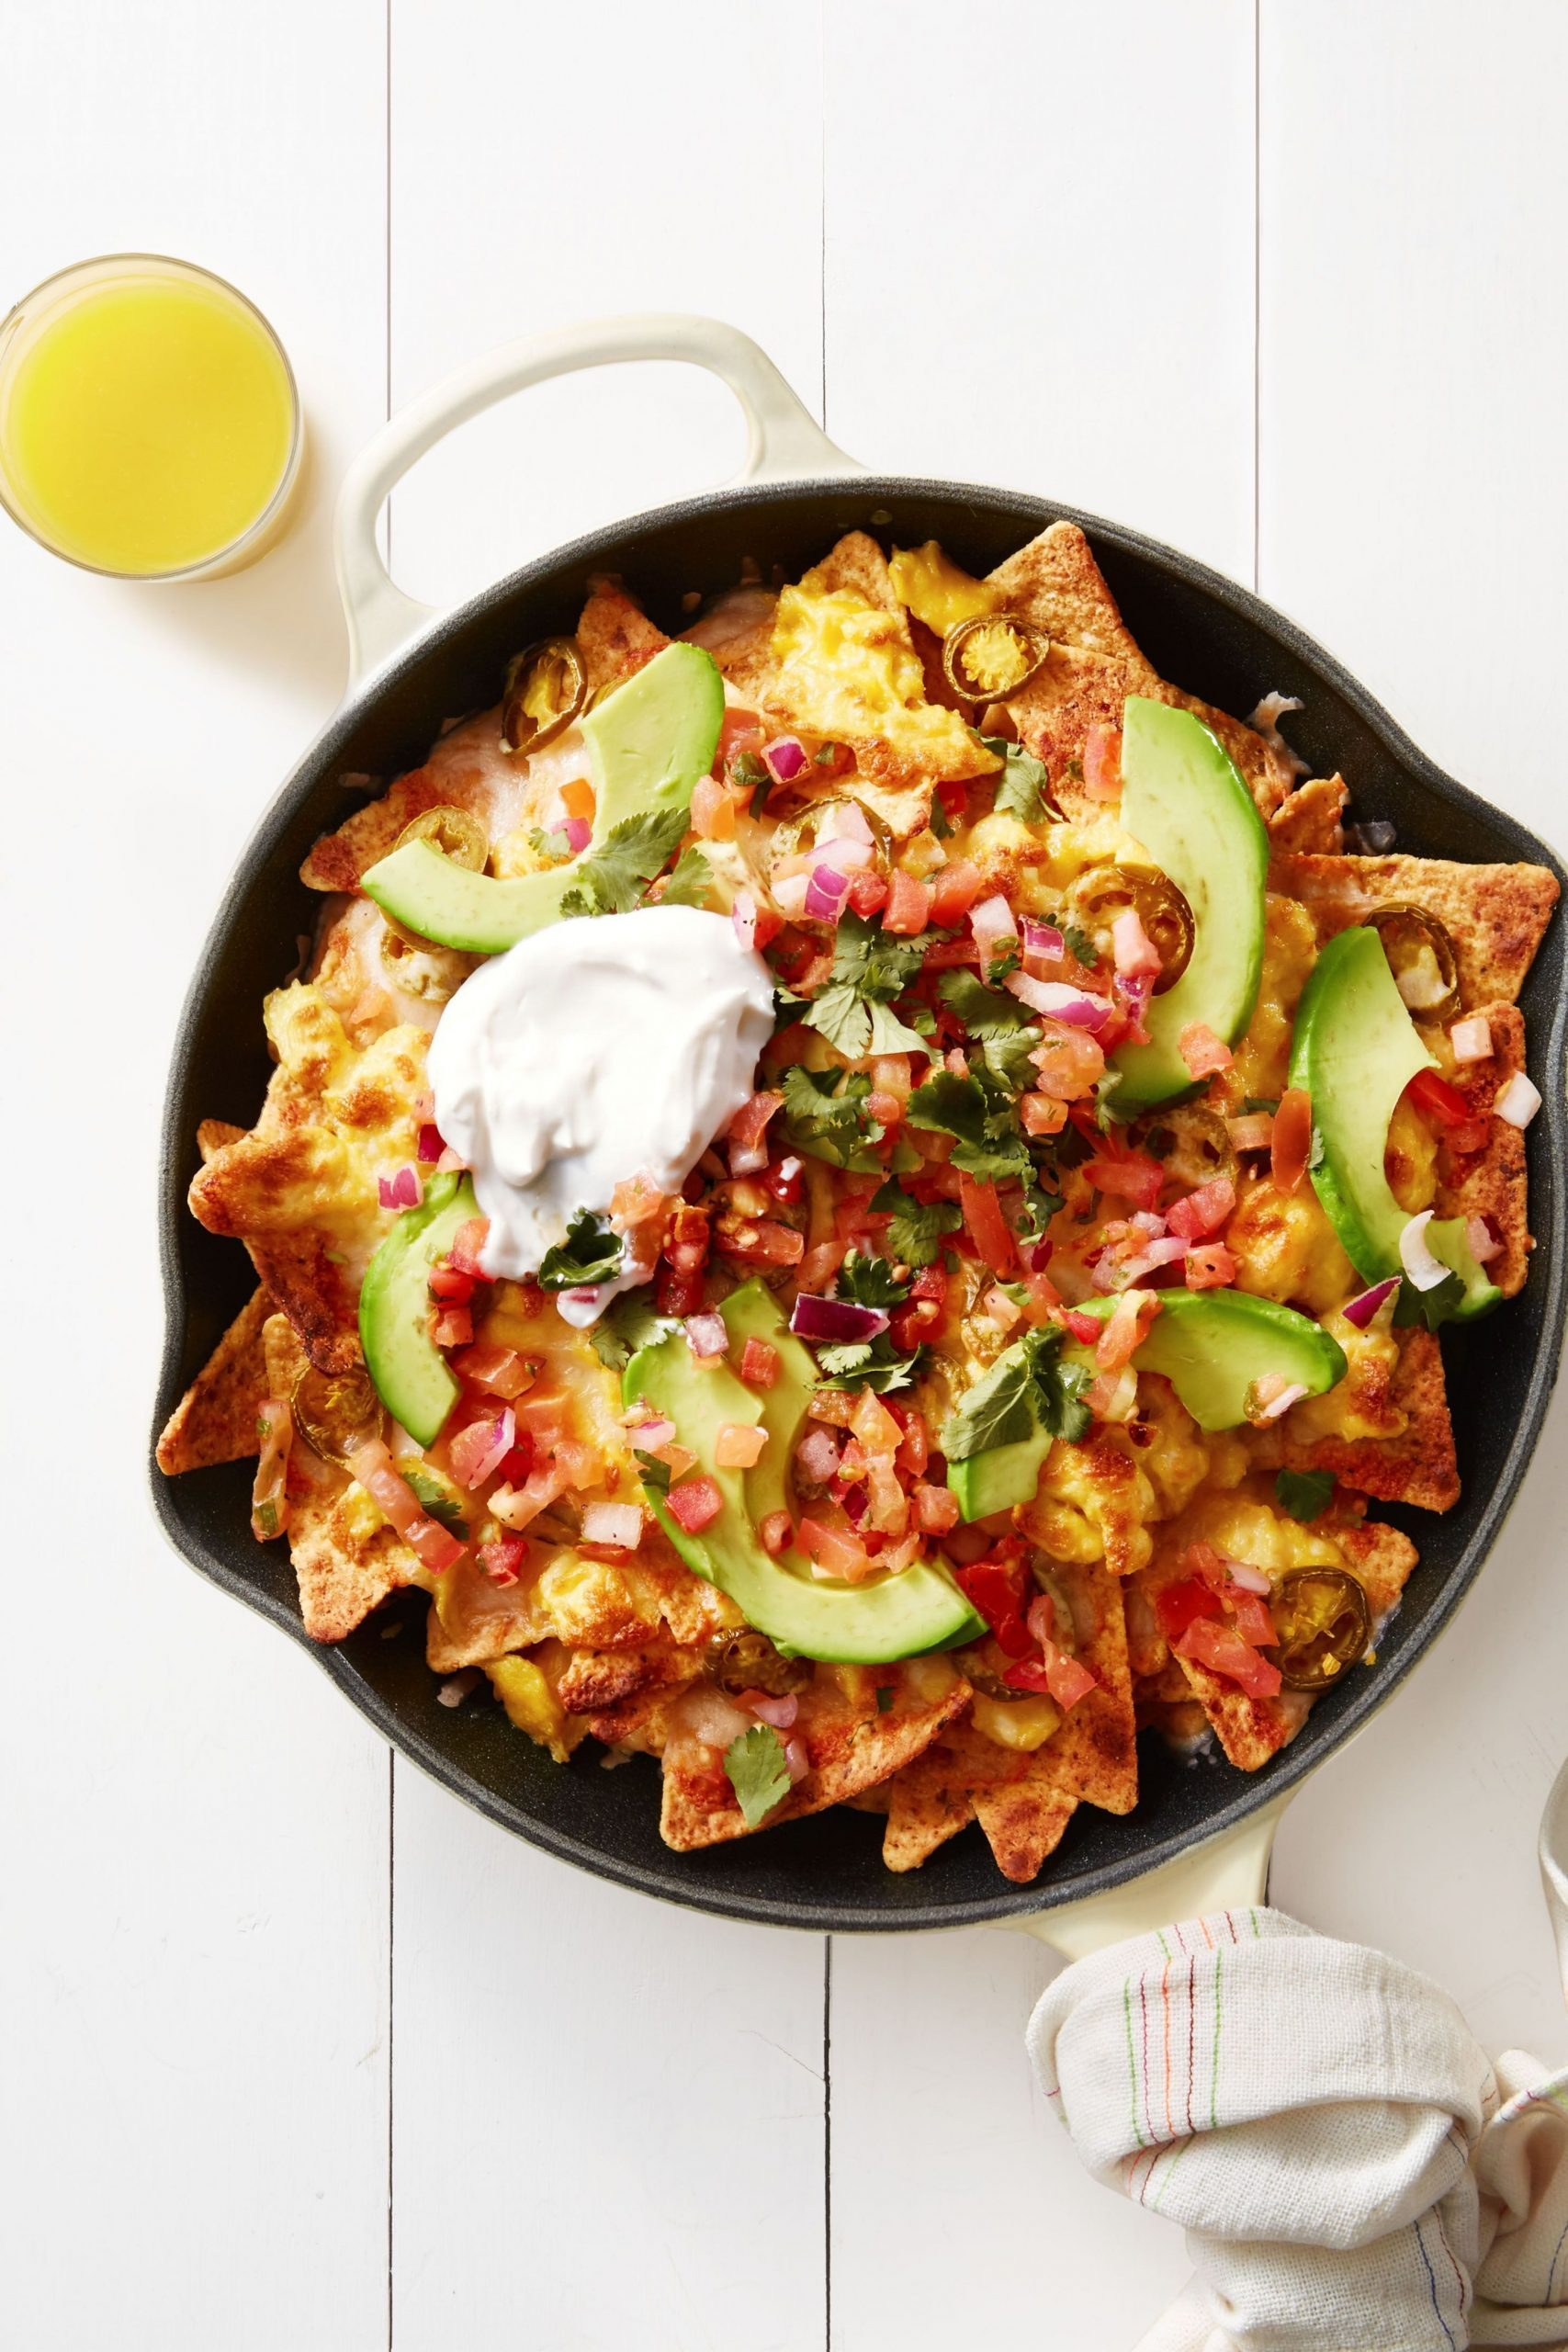 11 Easy Breakfast Ideas - Quick and Healthy Breakfast Recipes